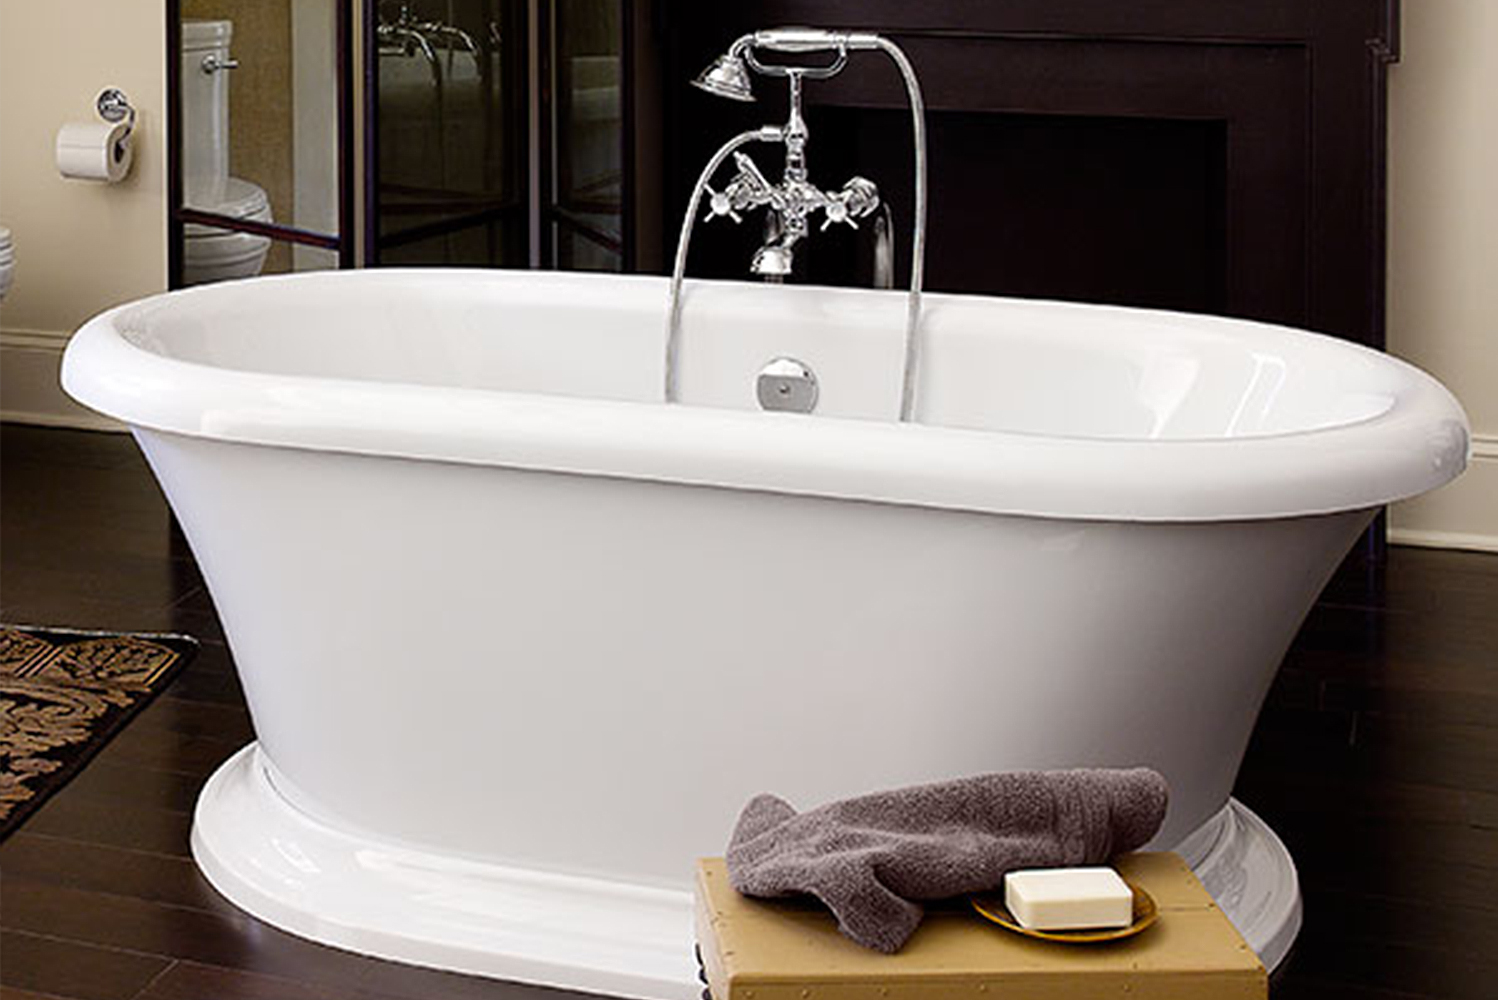 Bearing a traditional soaking tub design, the freestanding tub is made of acrylic with fiberglass reinforcement.